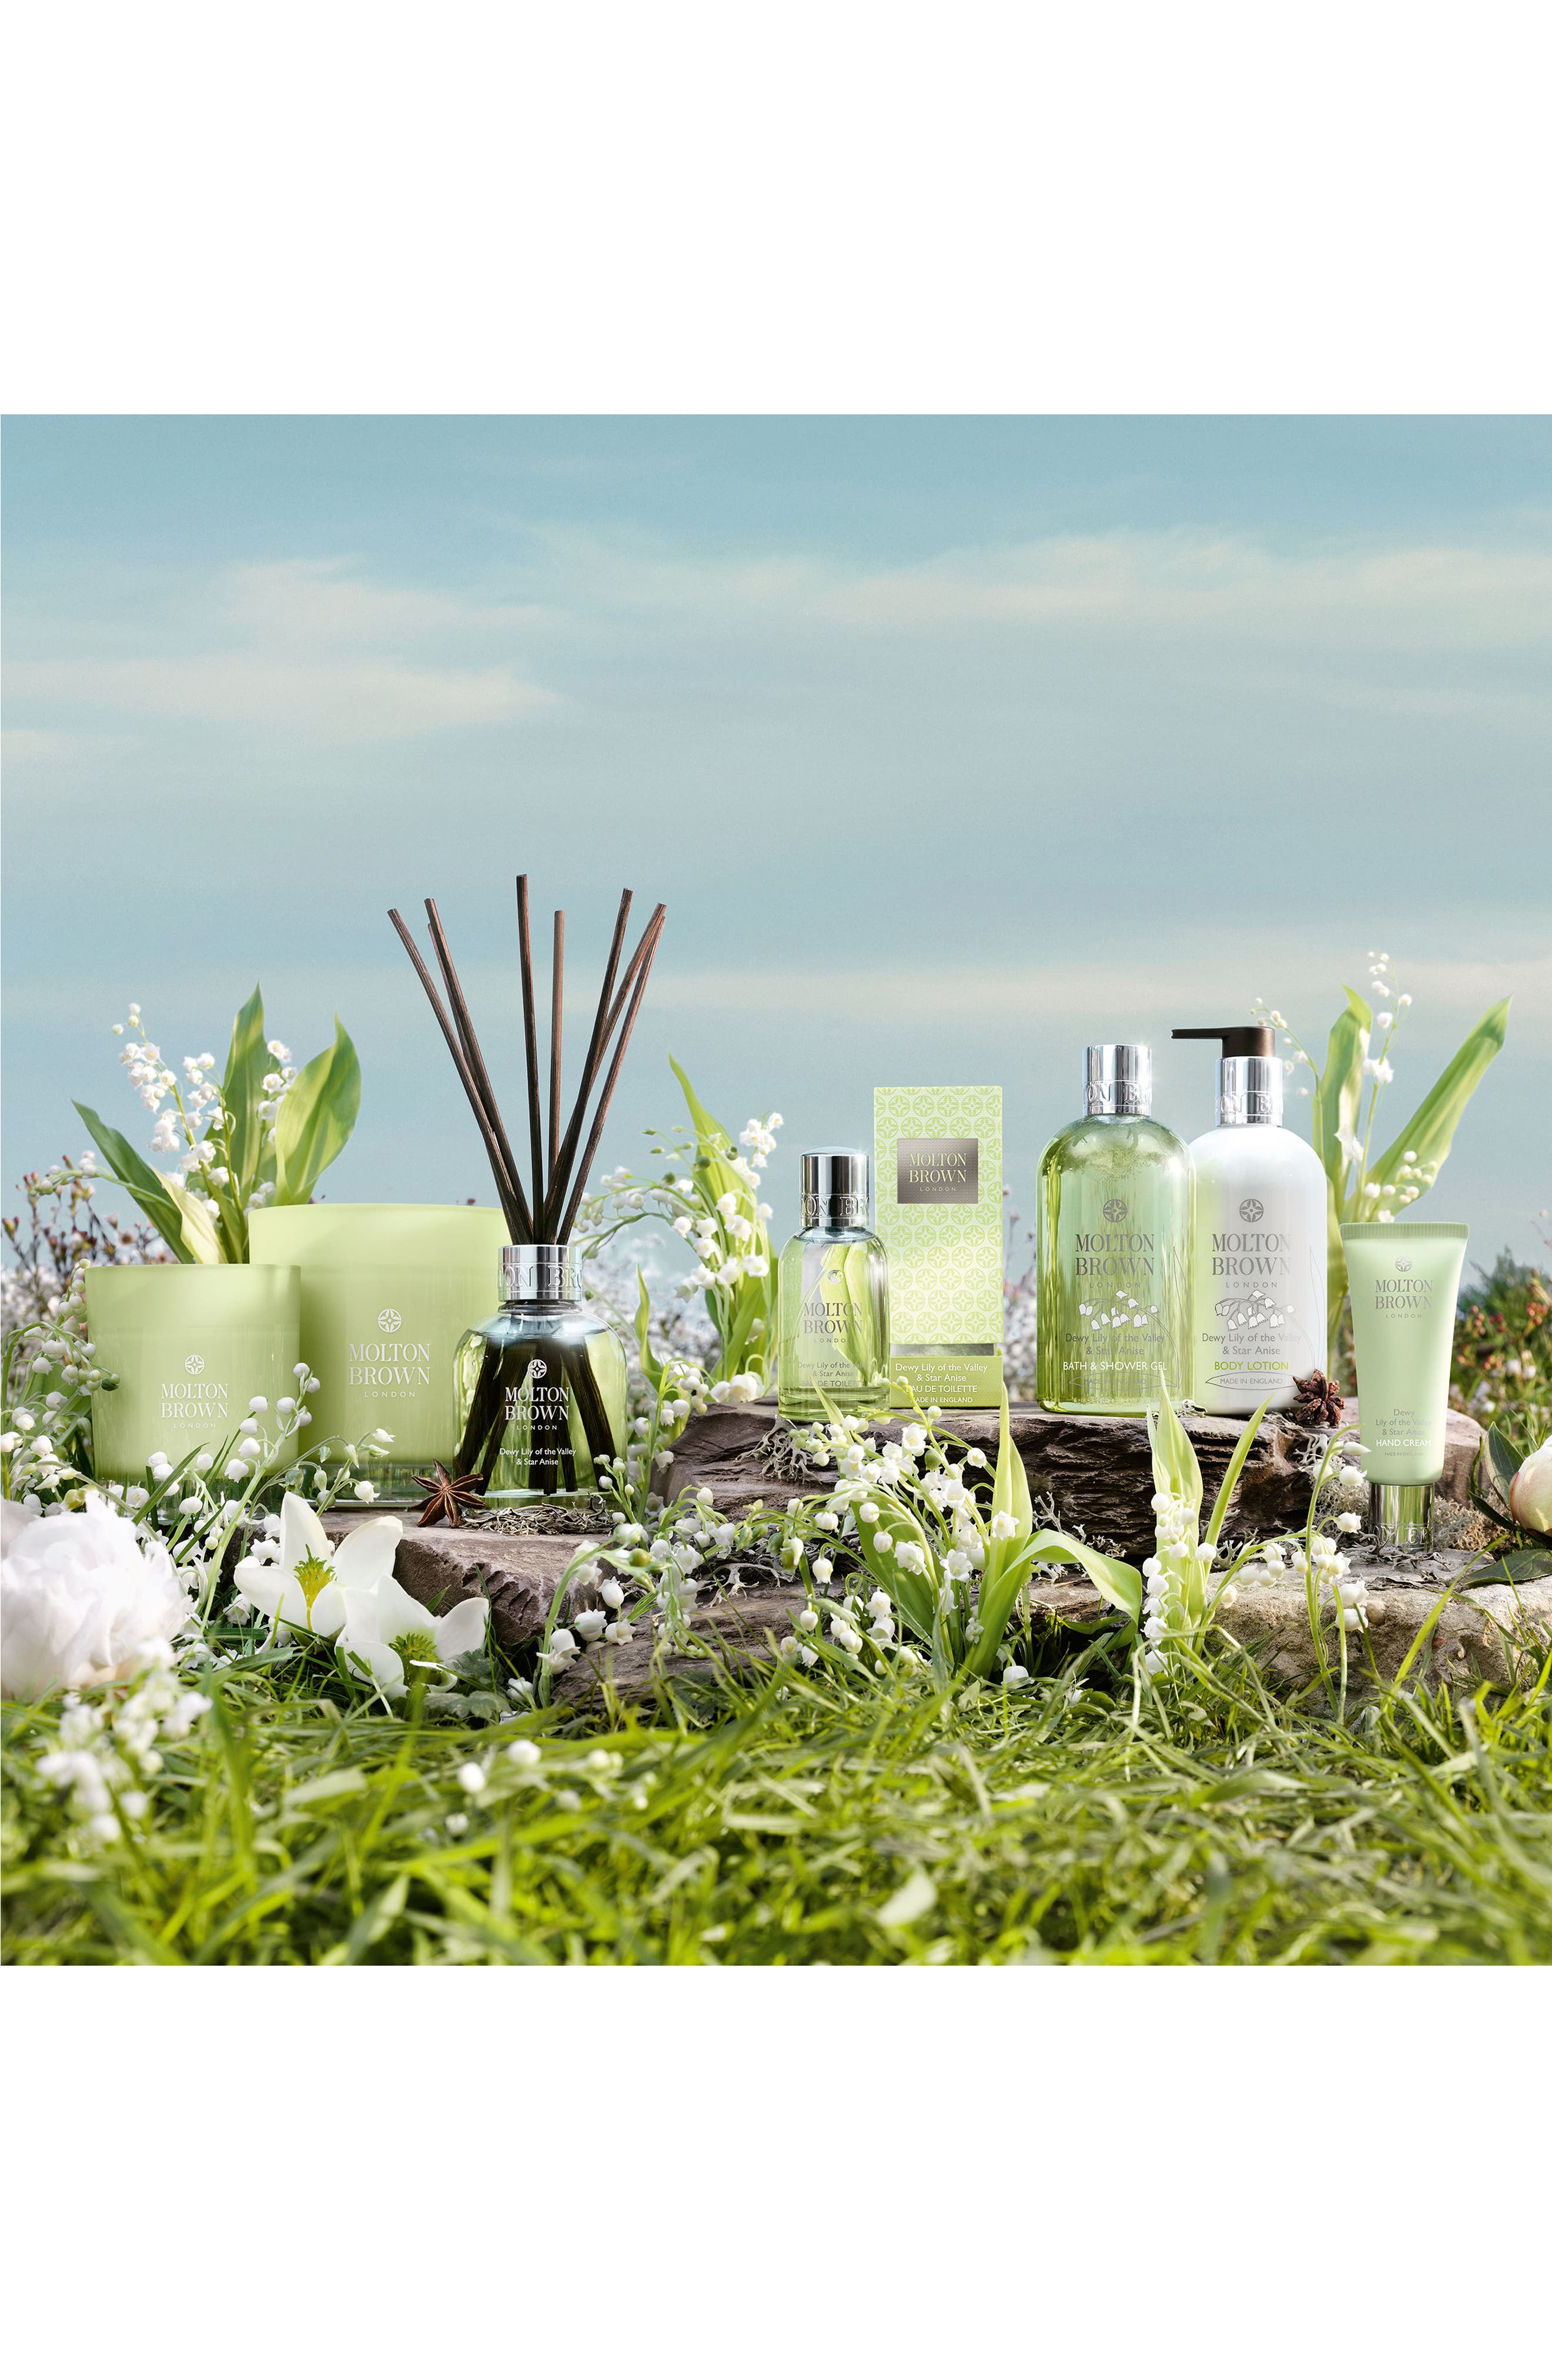 dewy lily of the valley star anise molton brown london shower dewy lily of the valley star anise molton brown london shower gel hand cream nordstrom nordstrom